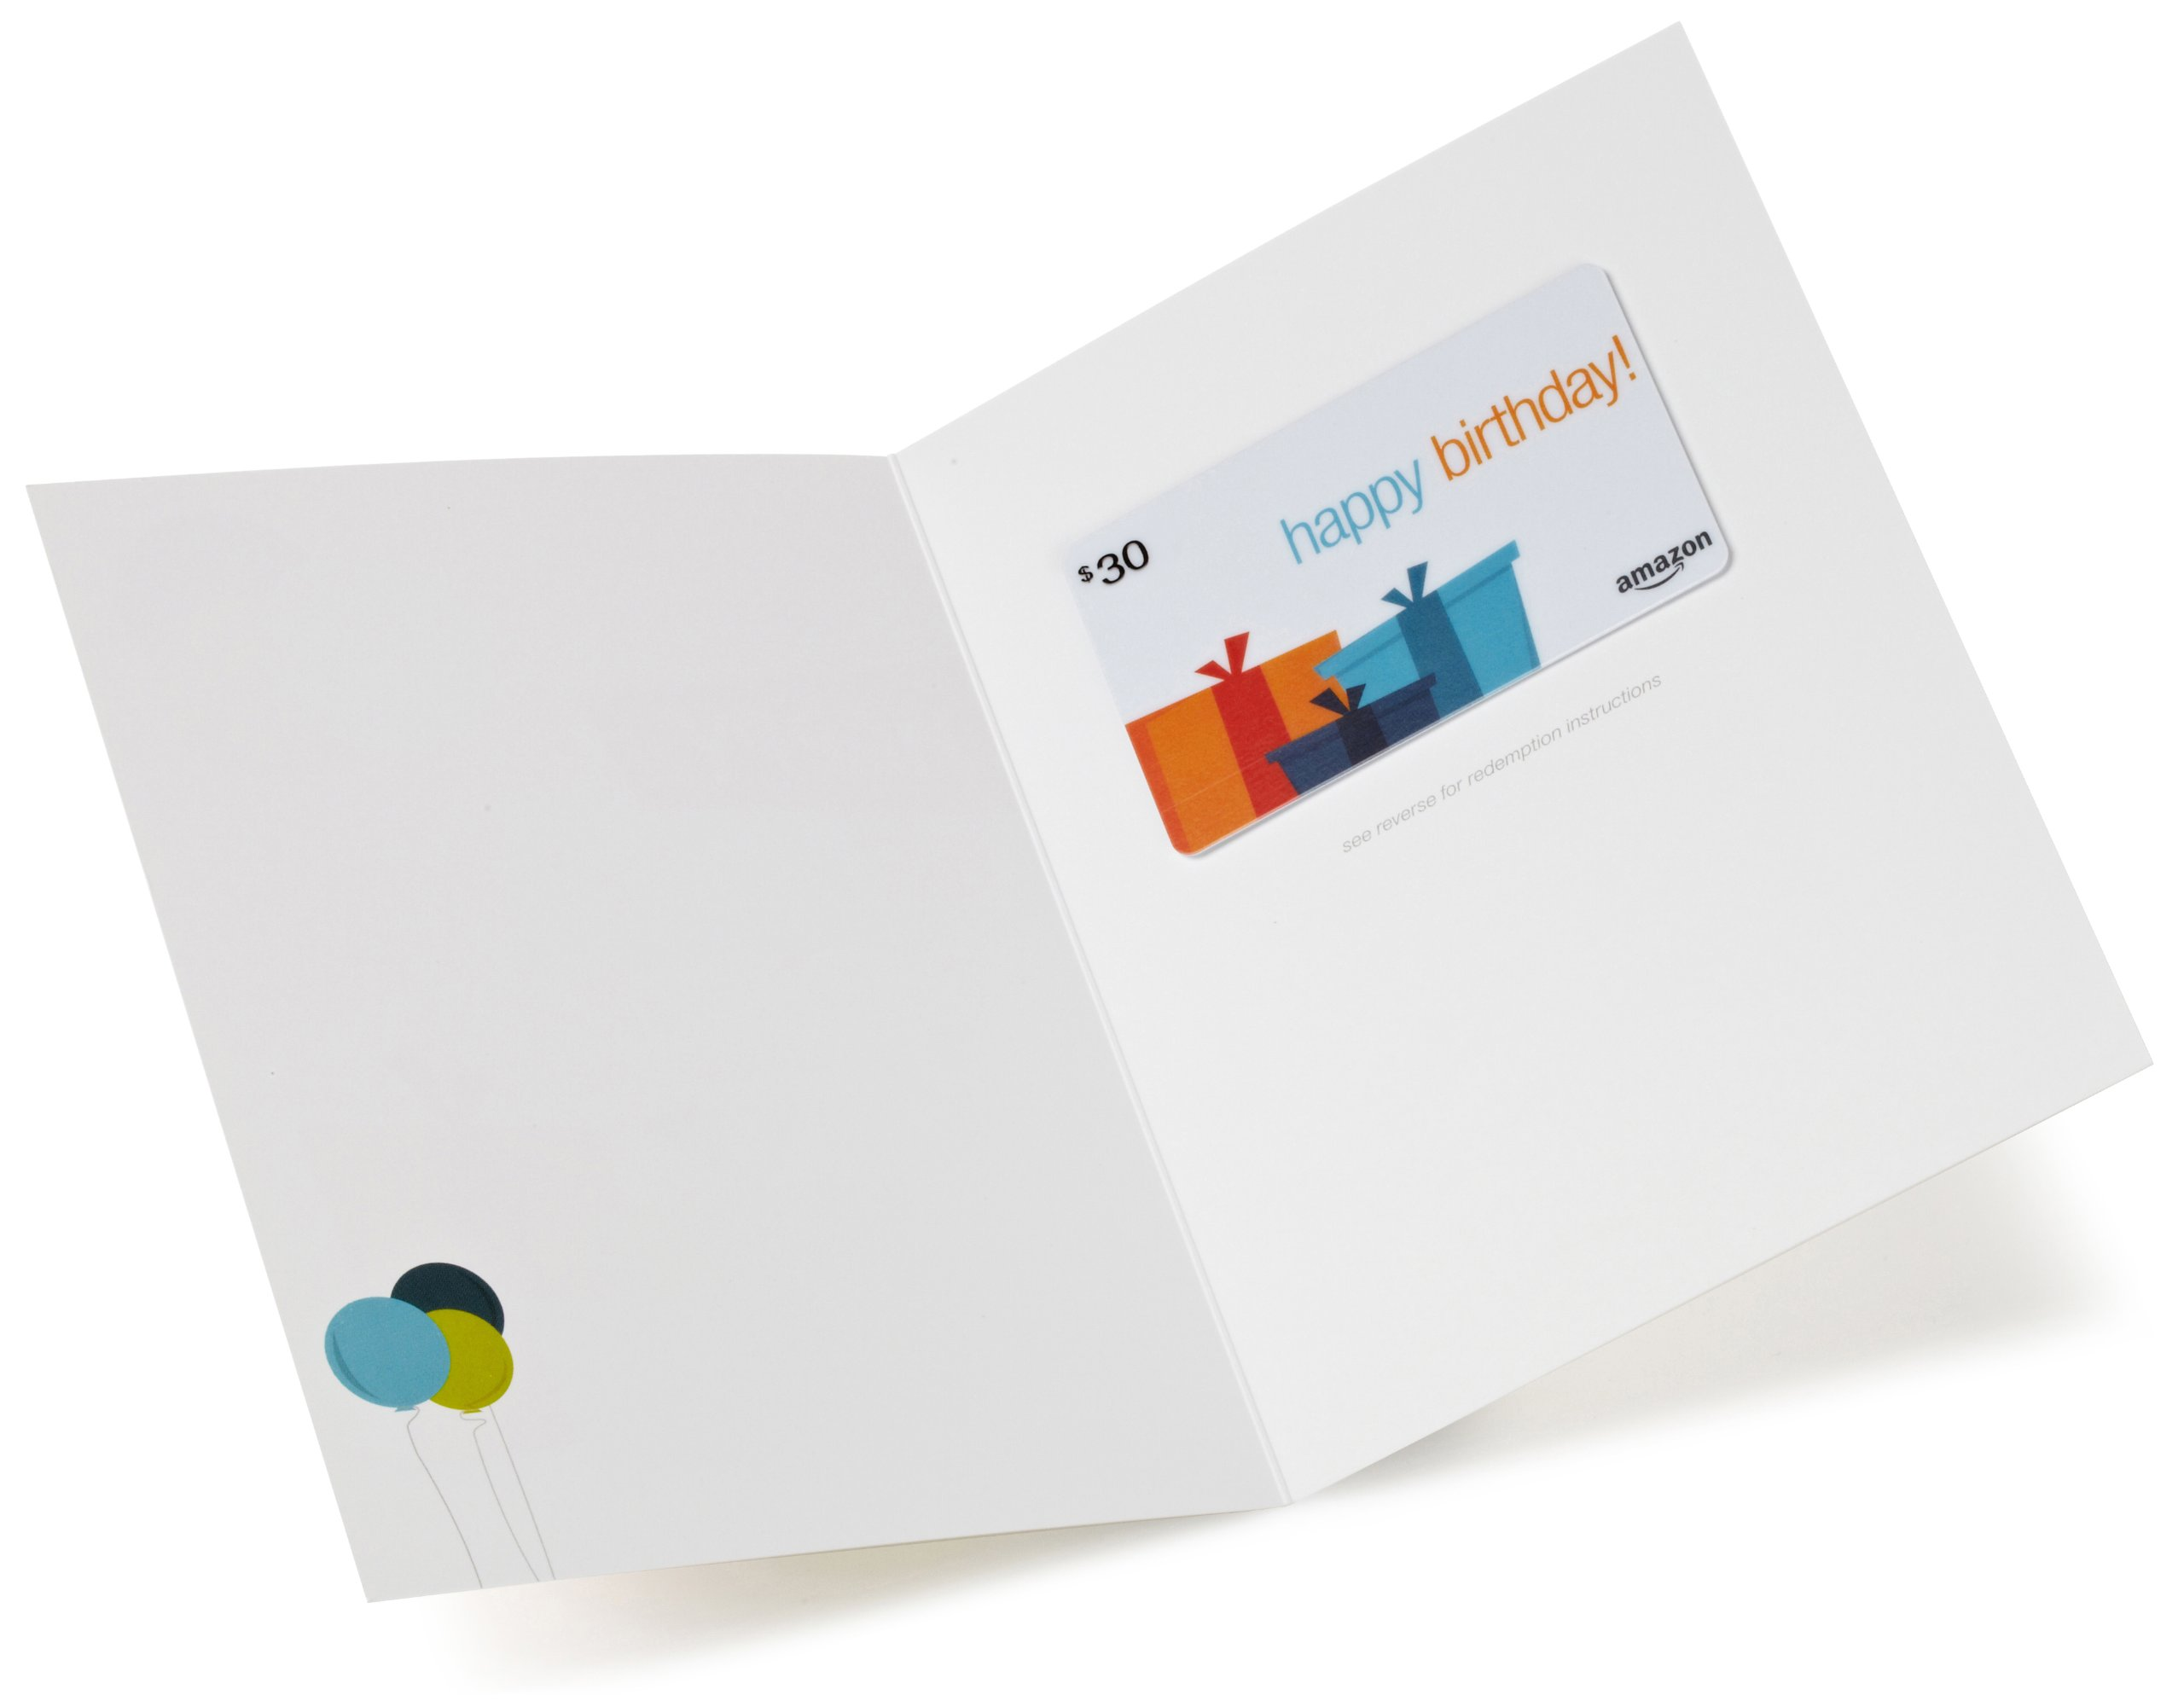 Amazon 30 Gift Card In A Greeting Birthday Presents Design Cards